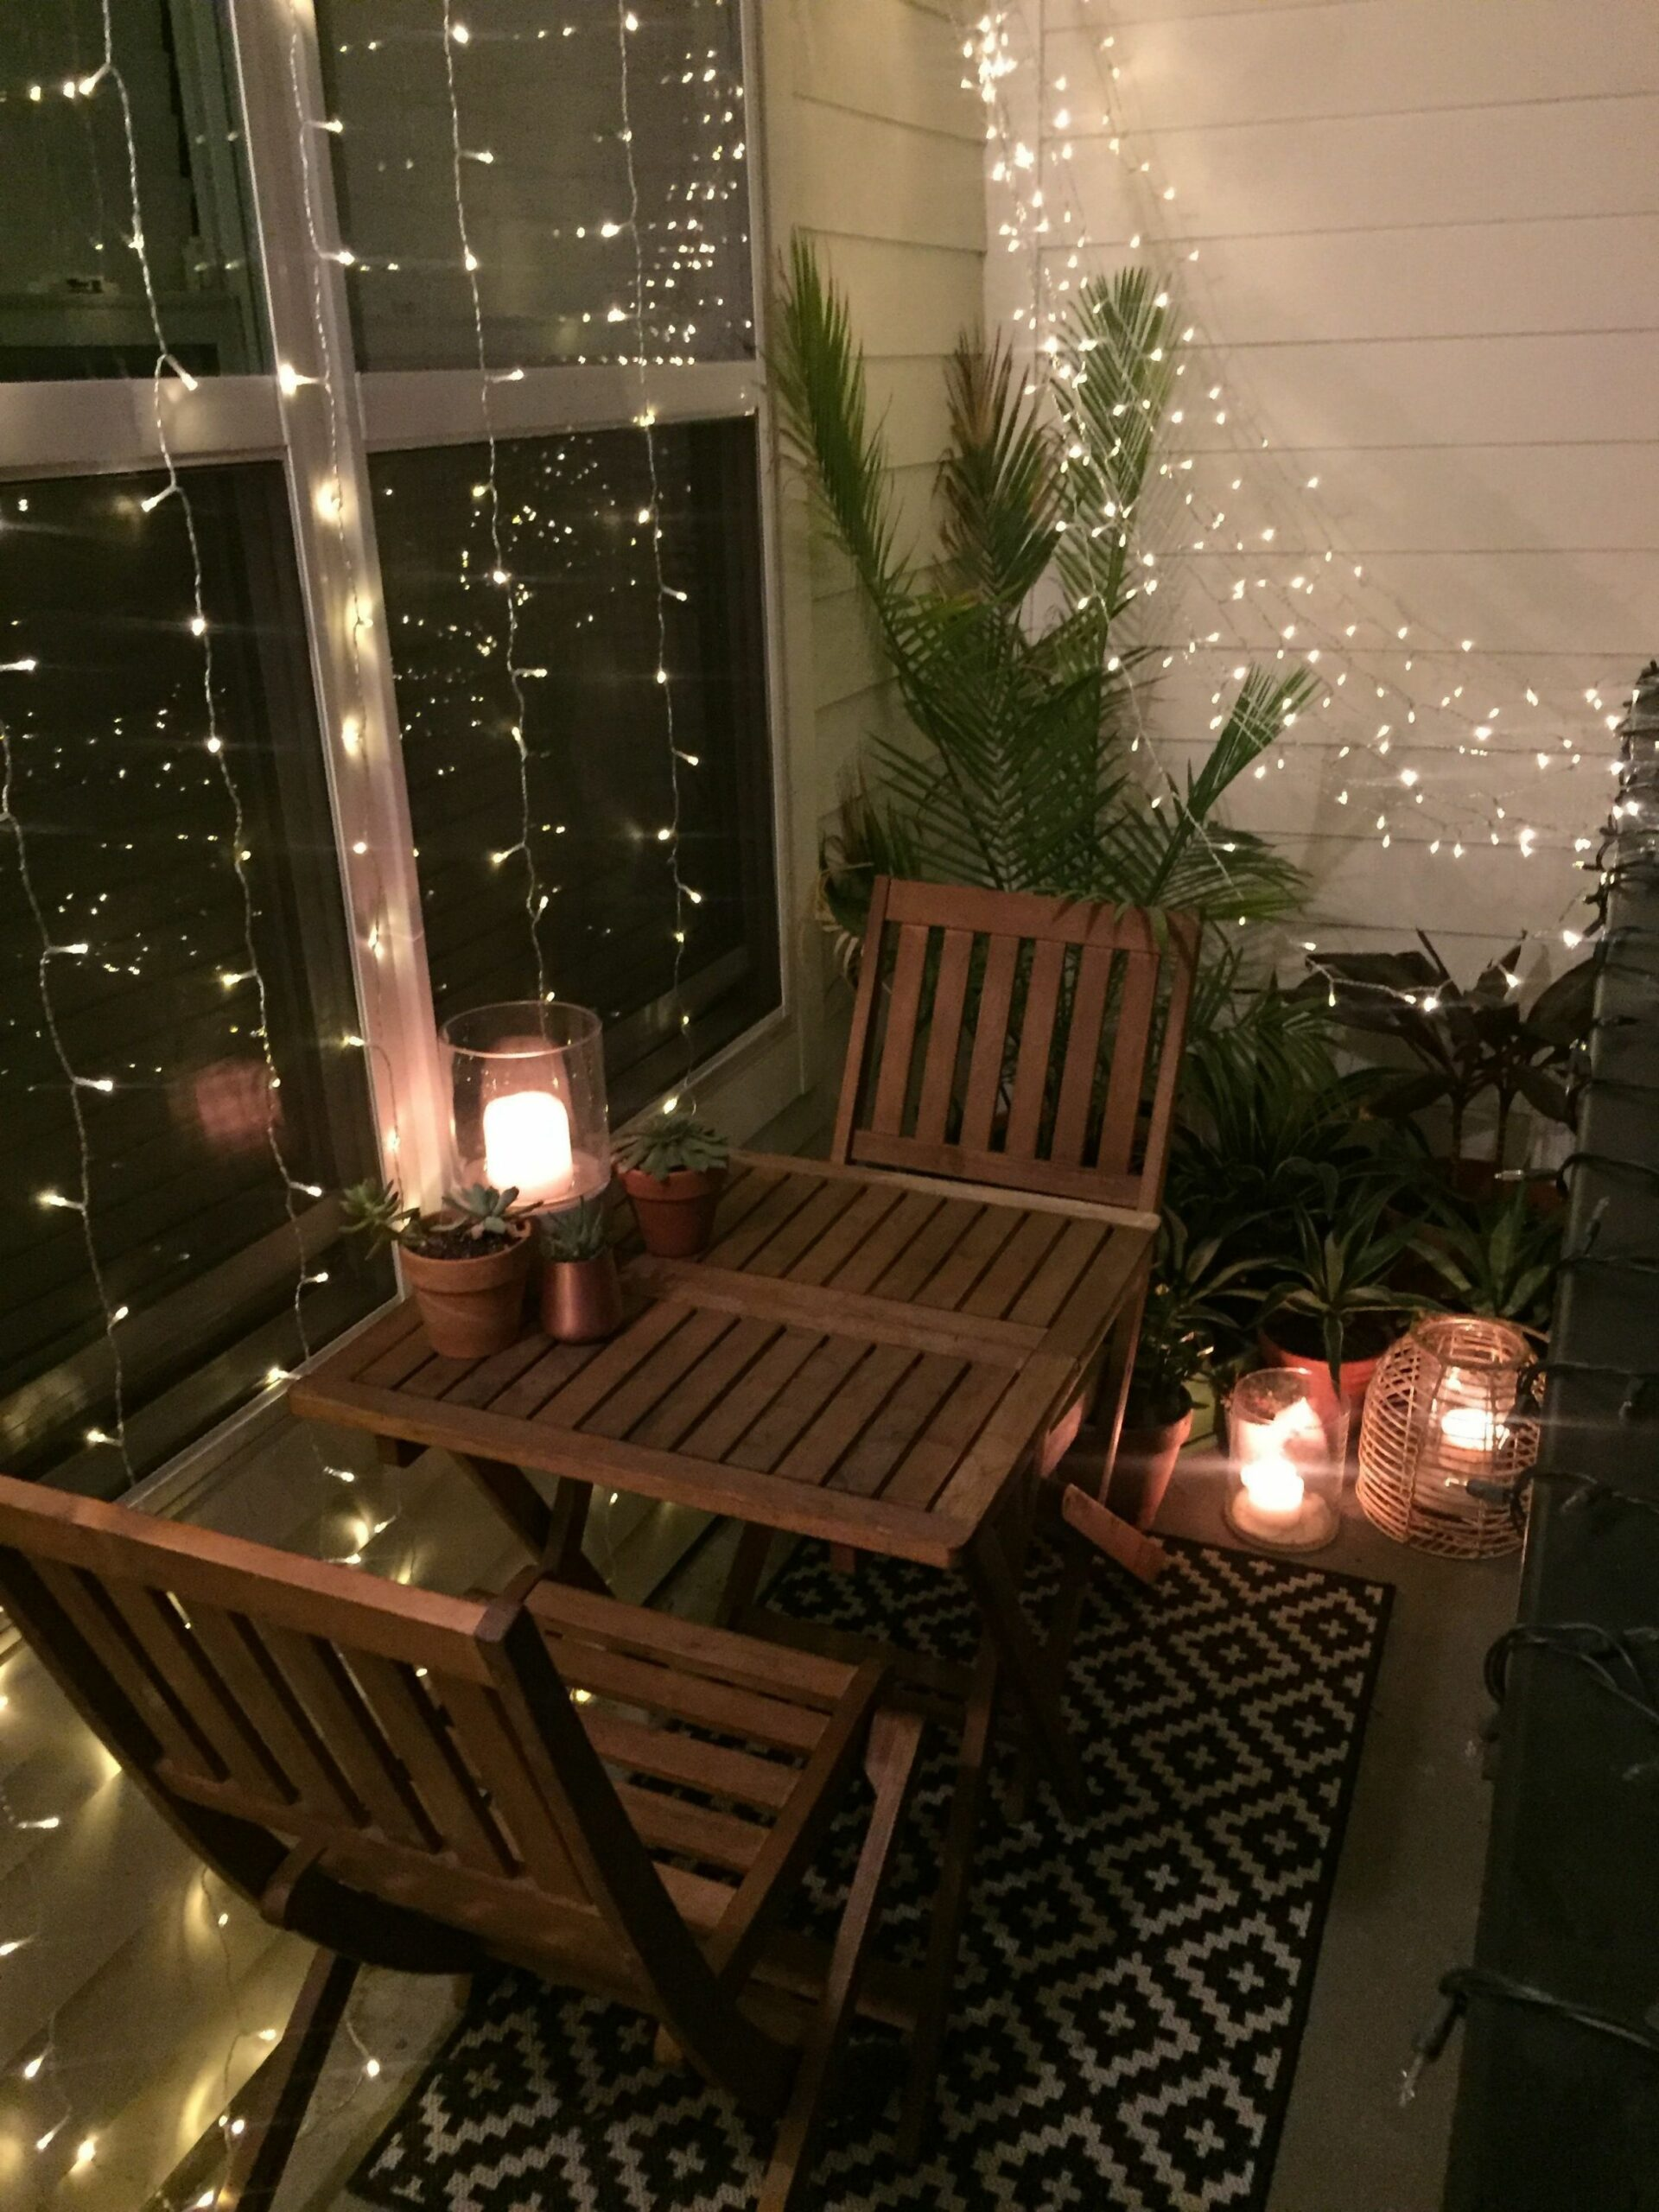 10 Beautiful small balcony ideas for limited space | Small balcony ..